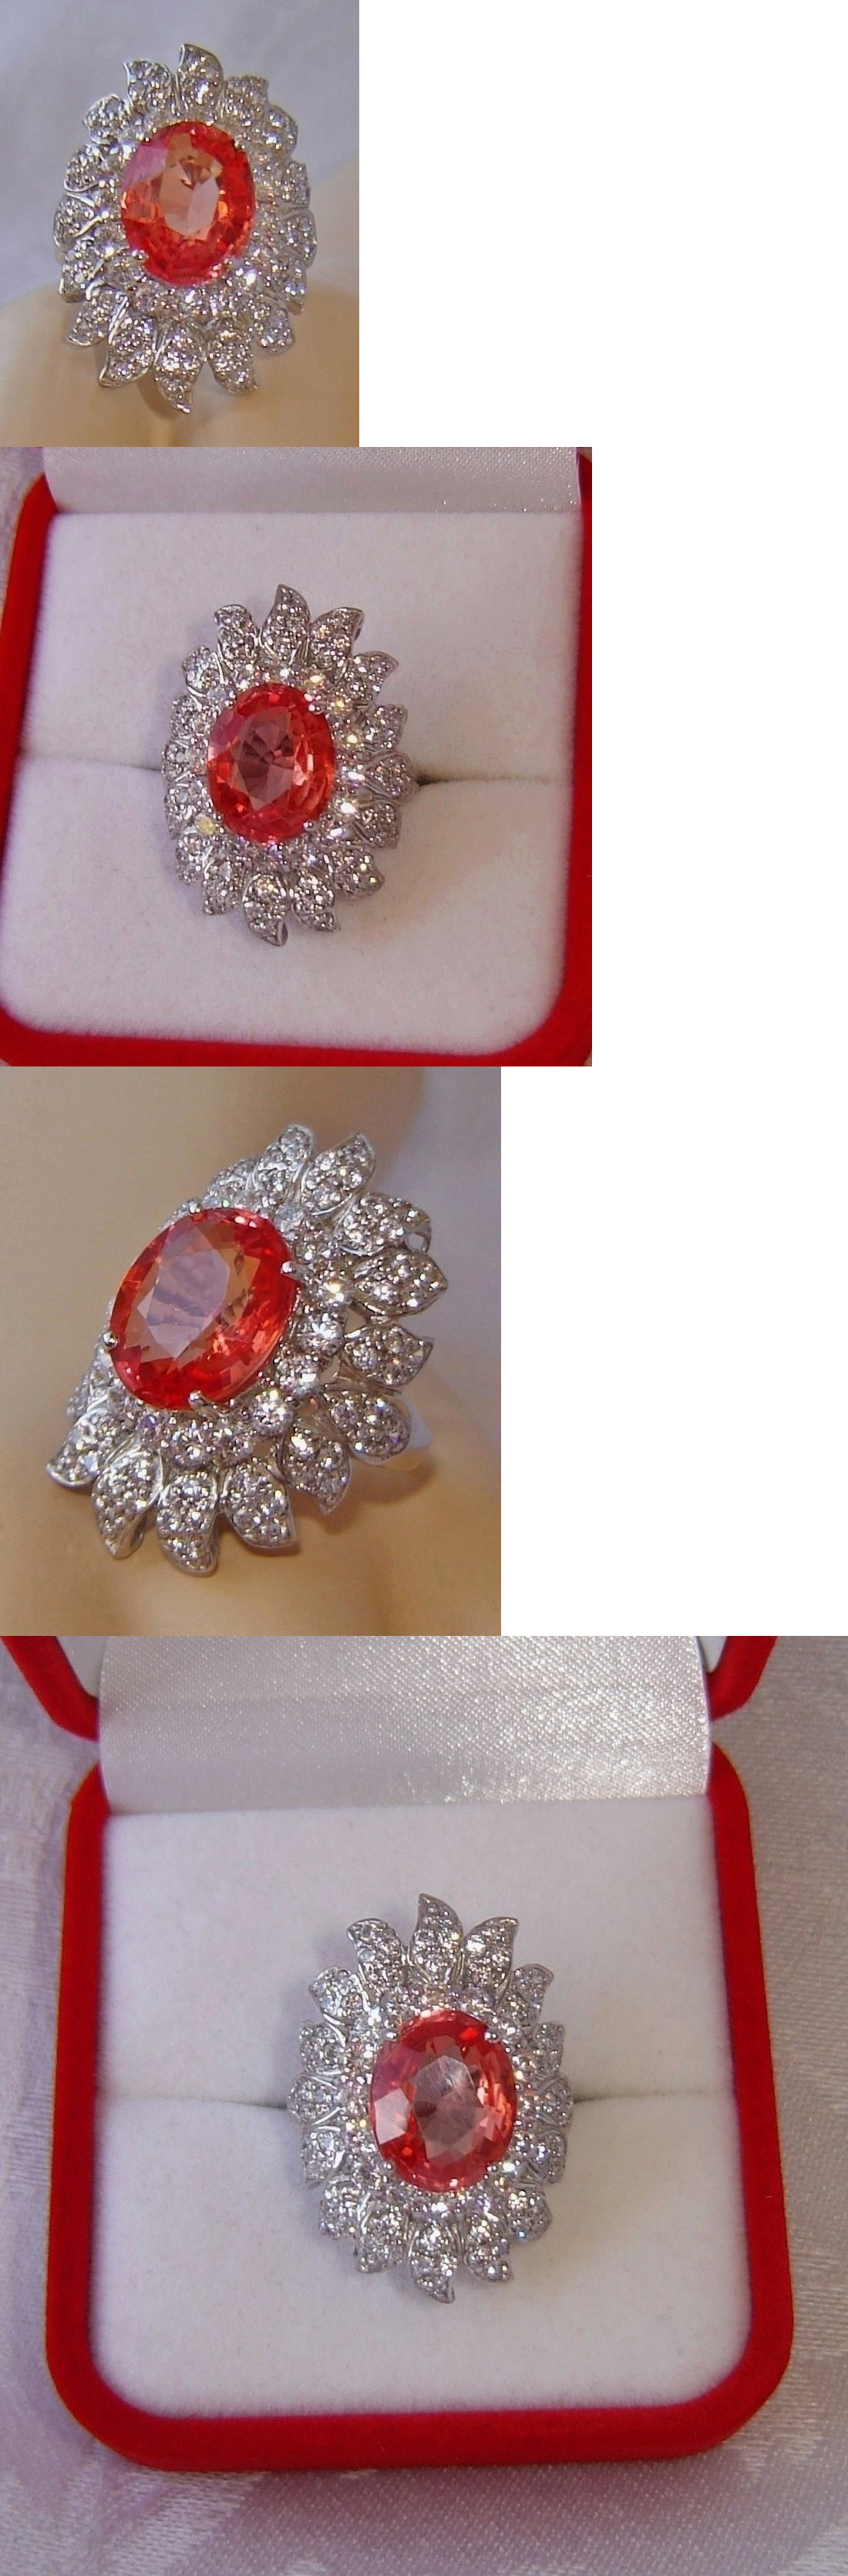 Rings ct padparadscha sapphire ring sz white gold